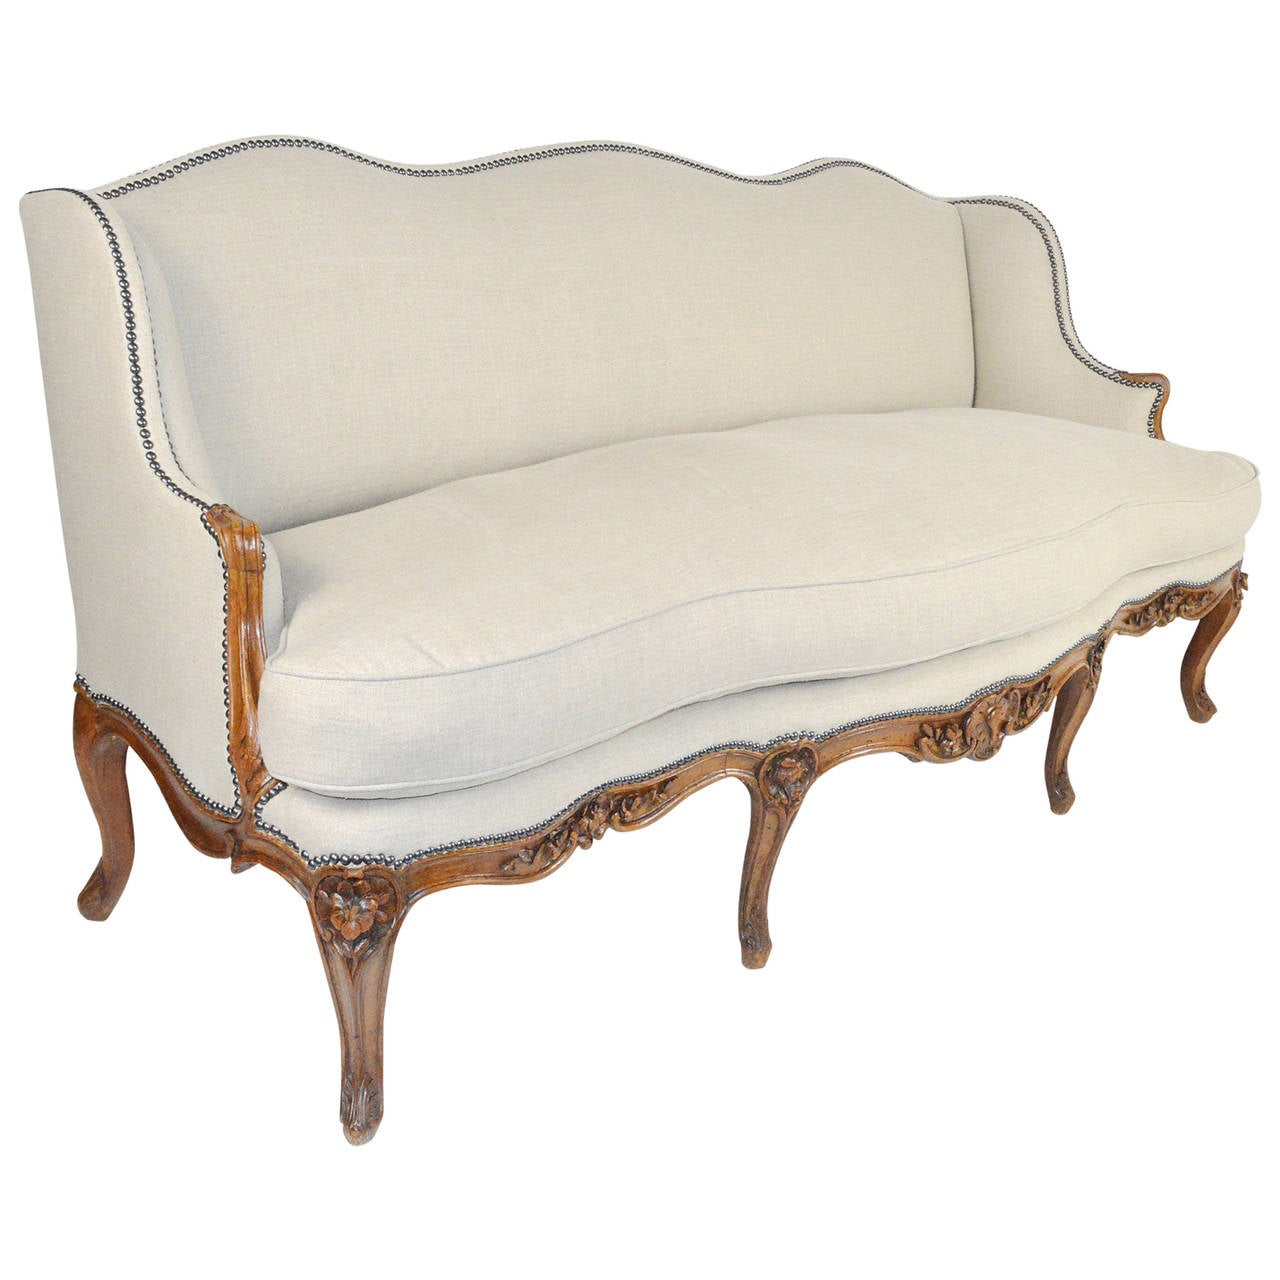 french louis xv style serpentine sofa canape at 1stdibs. Black Bedroom Furniture Sets. Home Design Ideas